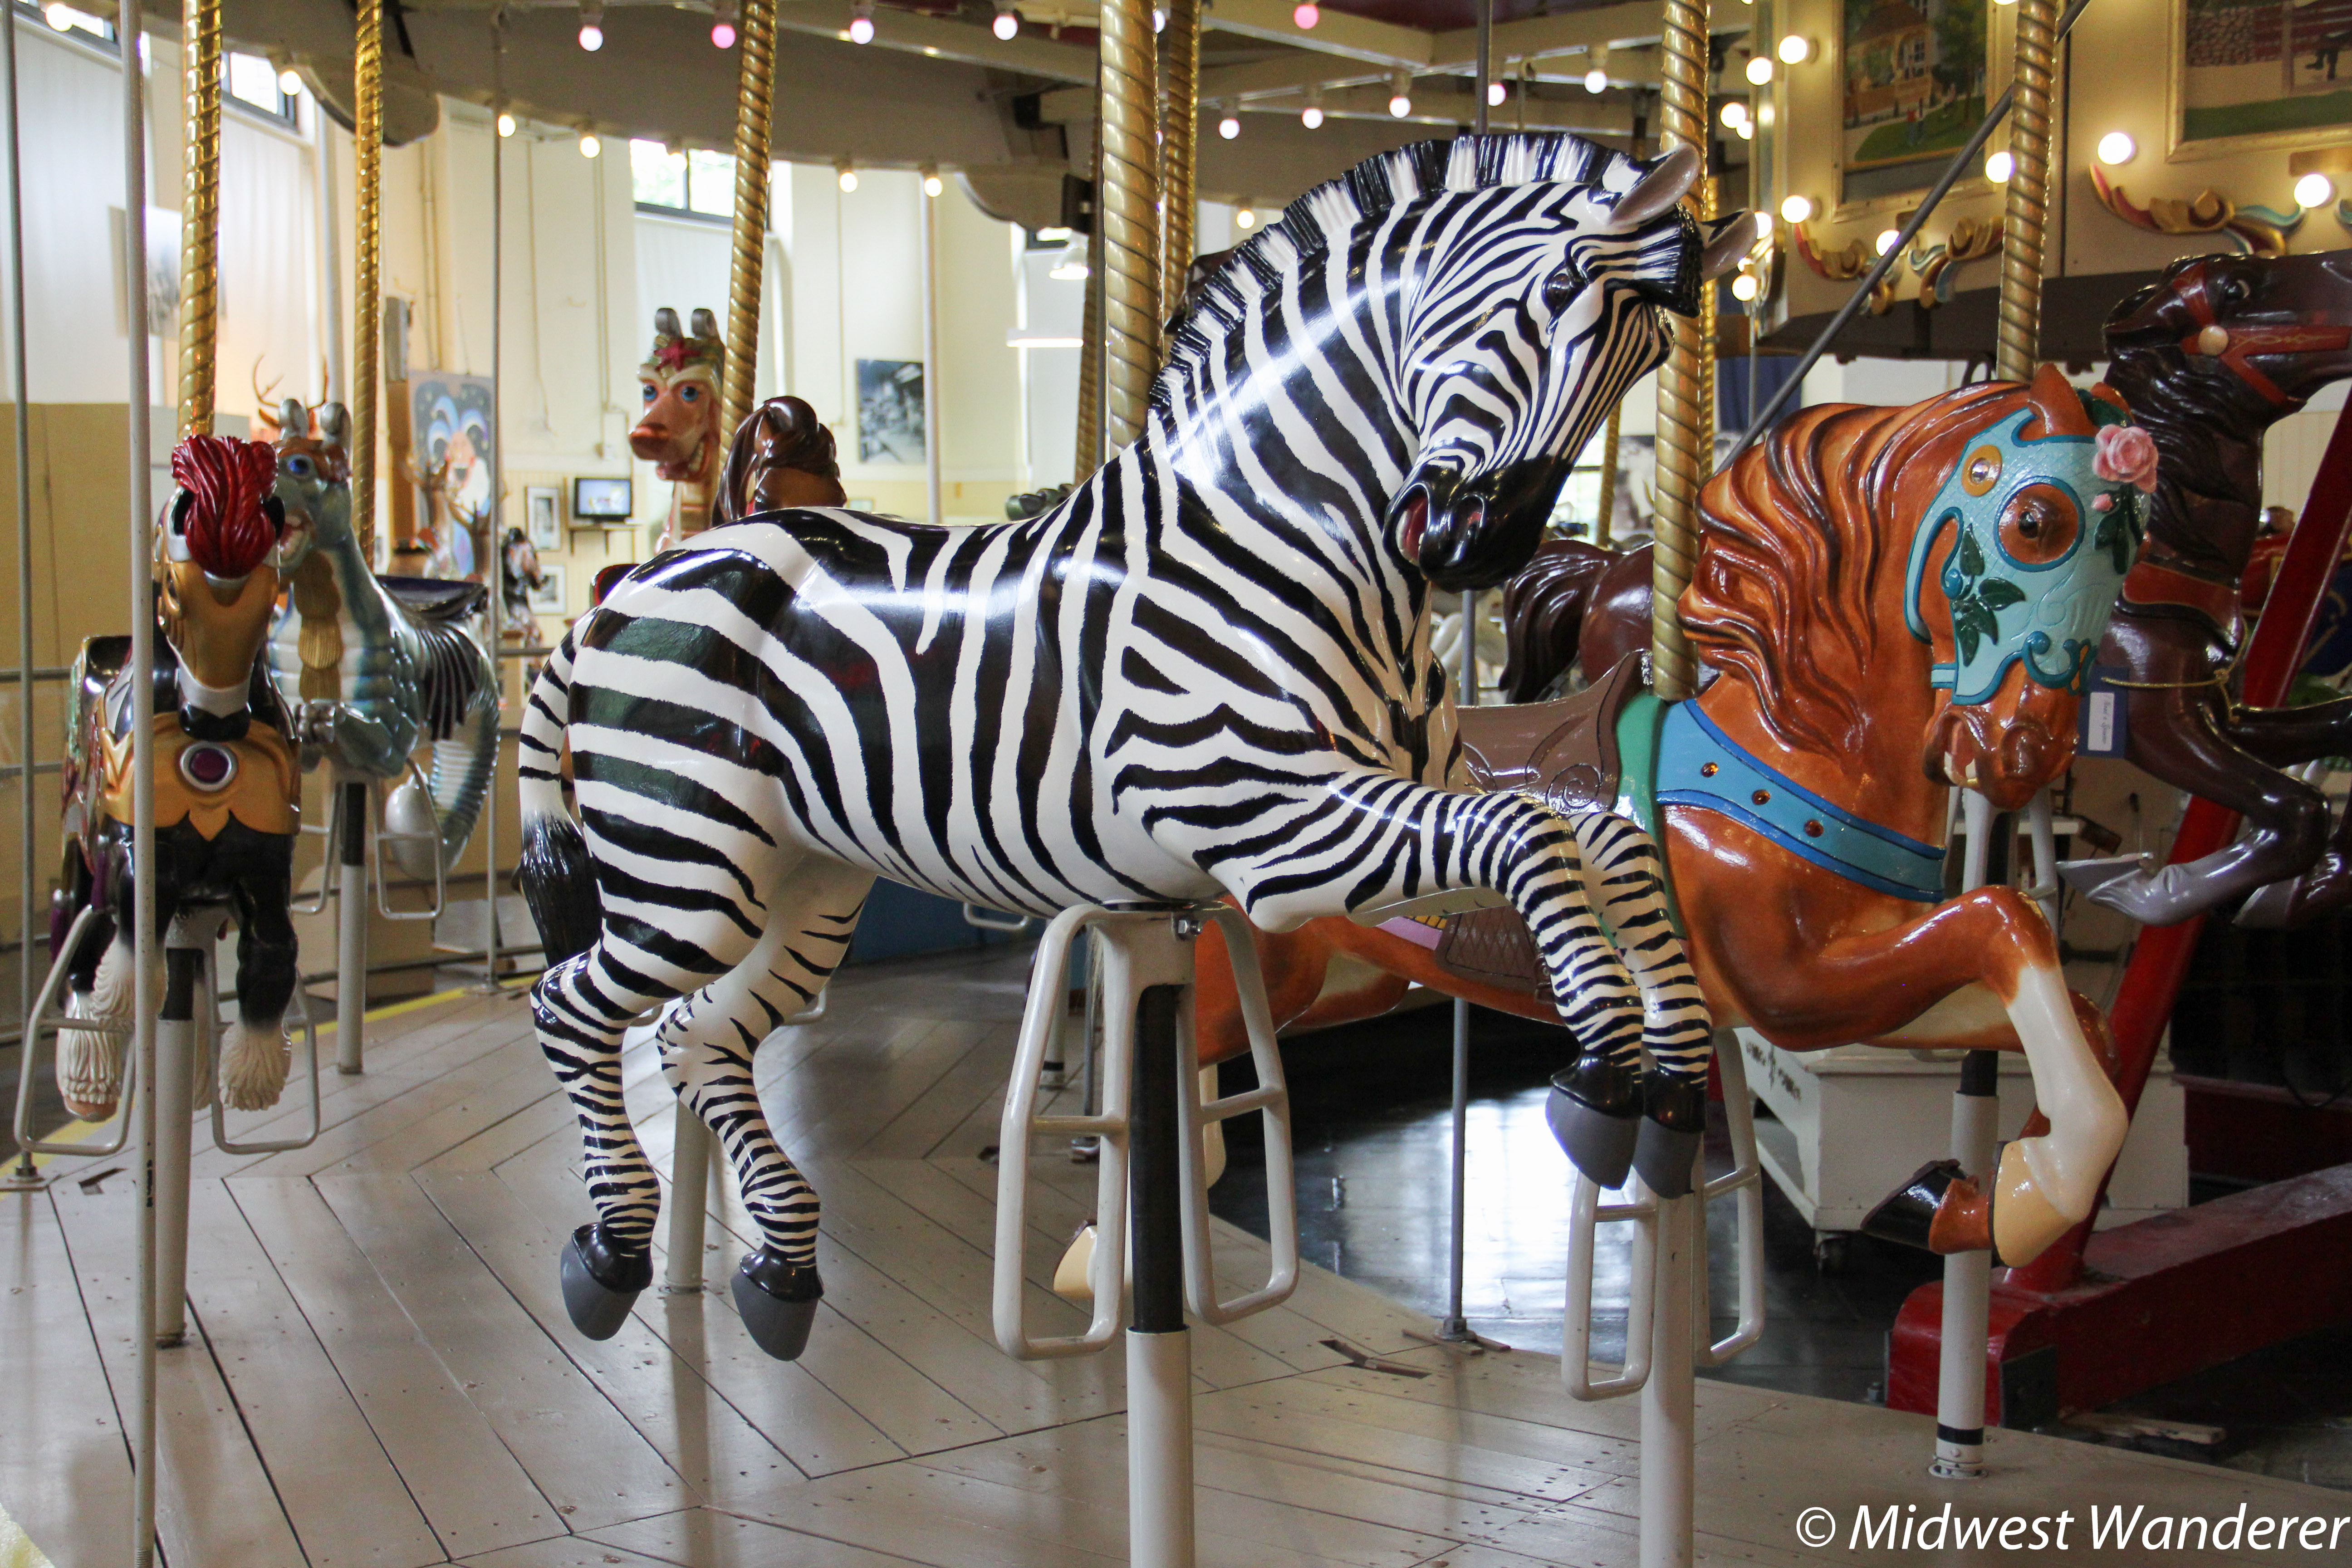 Discover the Romance of Yesteryear's Carousels at Sandusky's Merry-Go-Round Museum